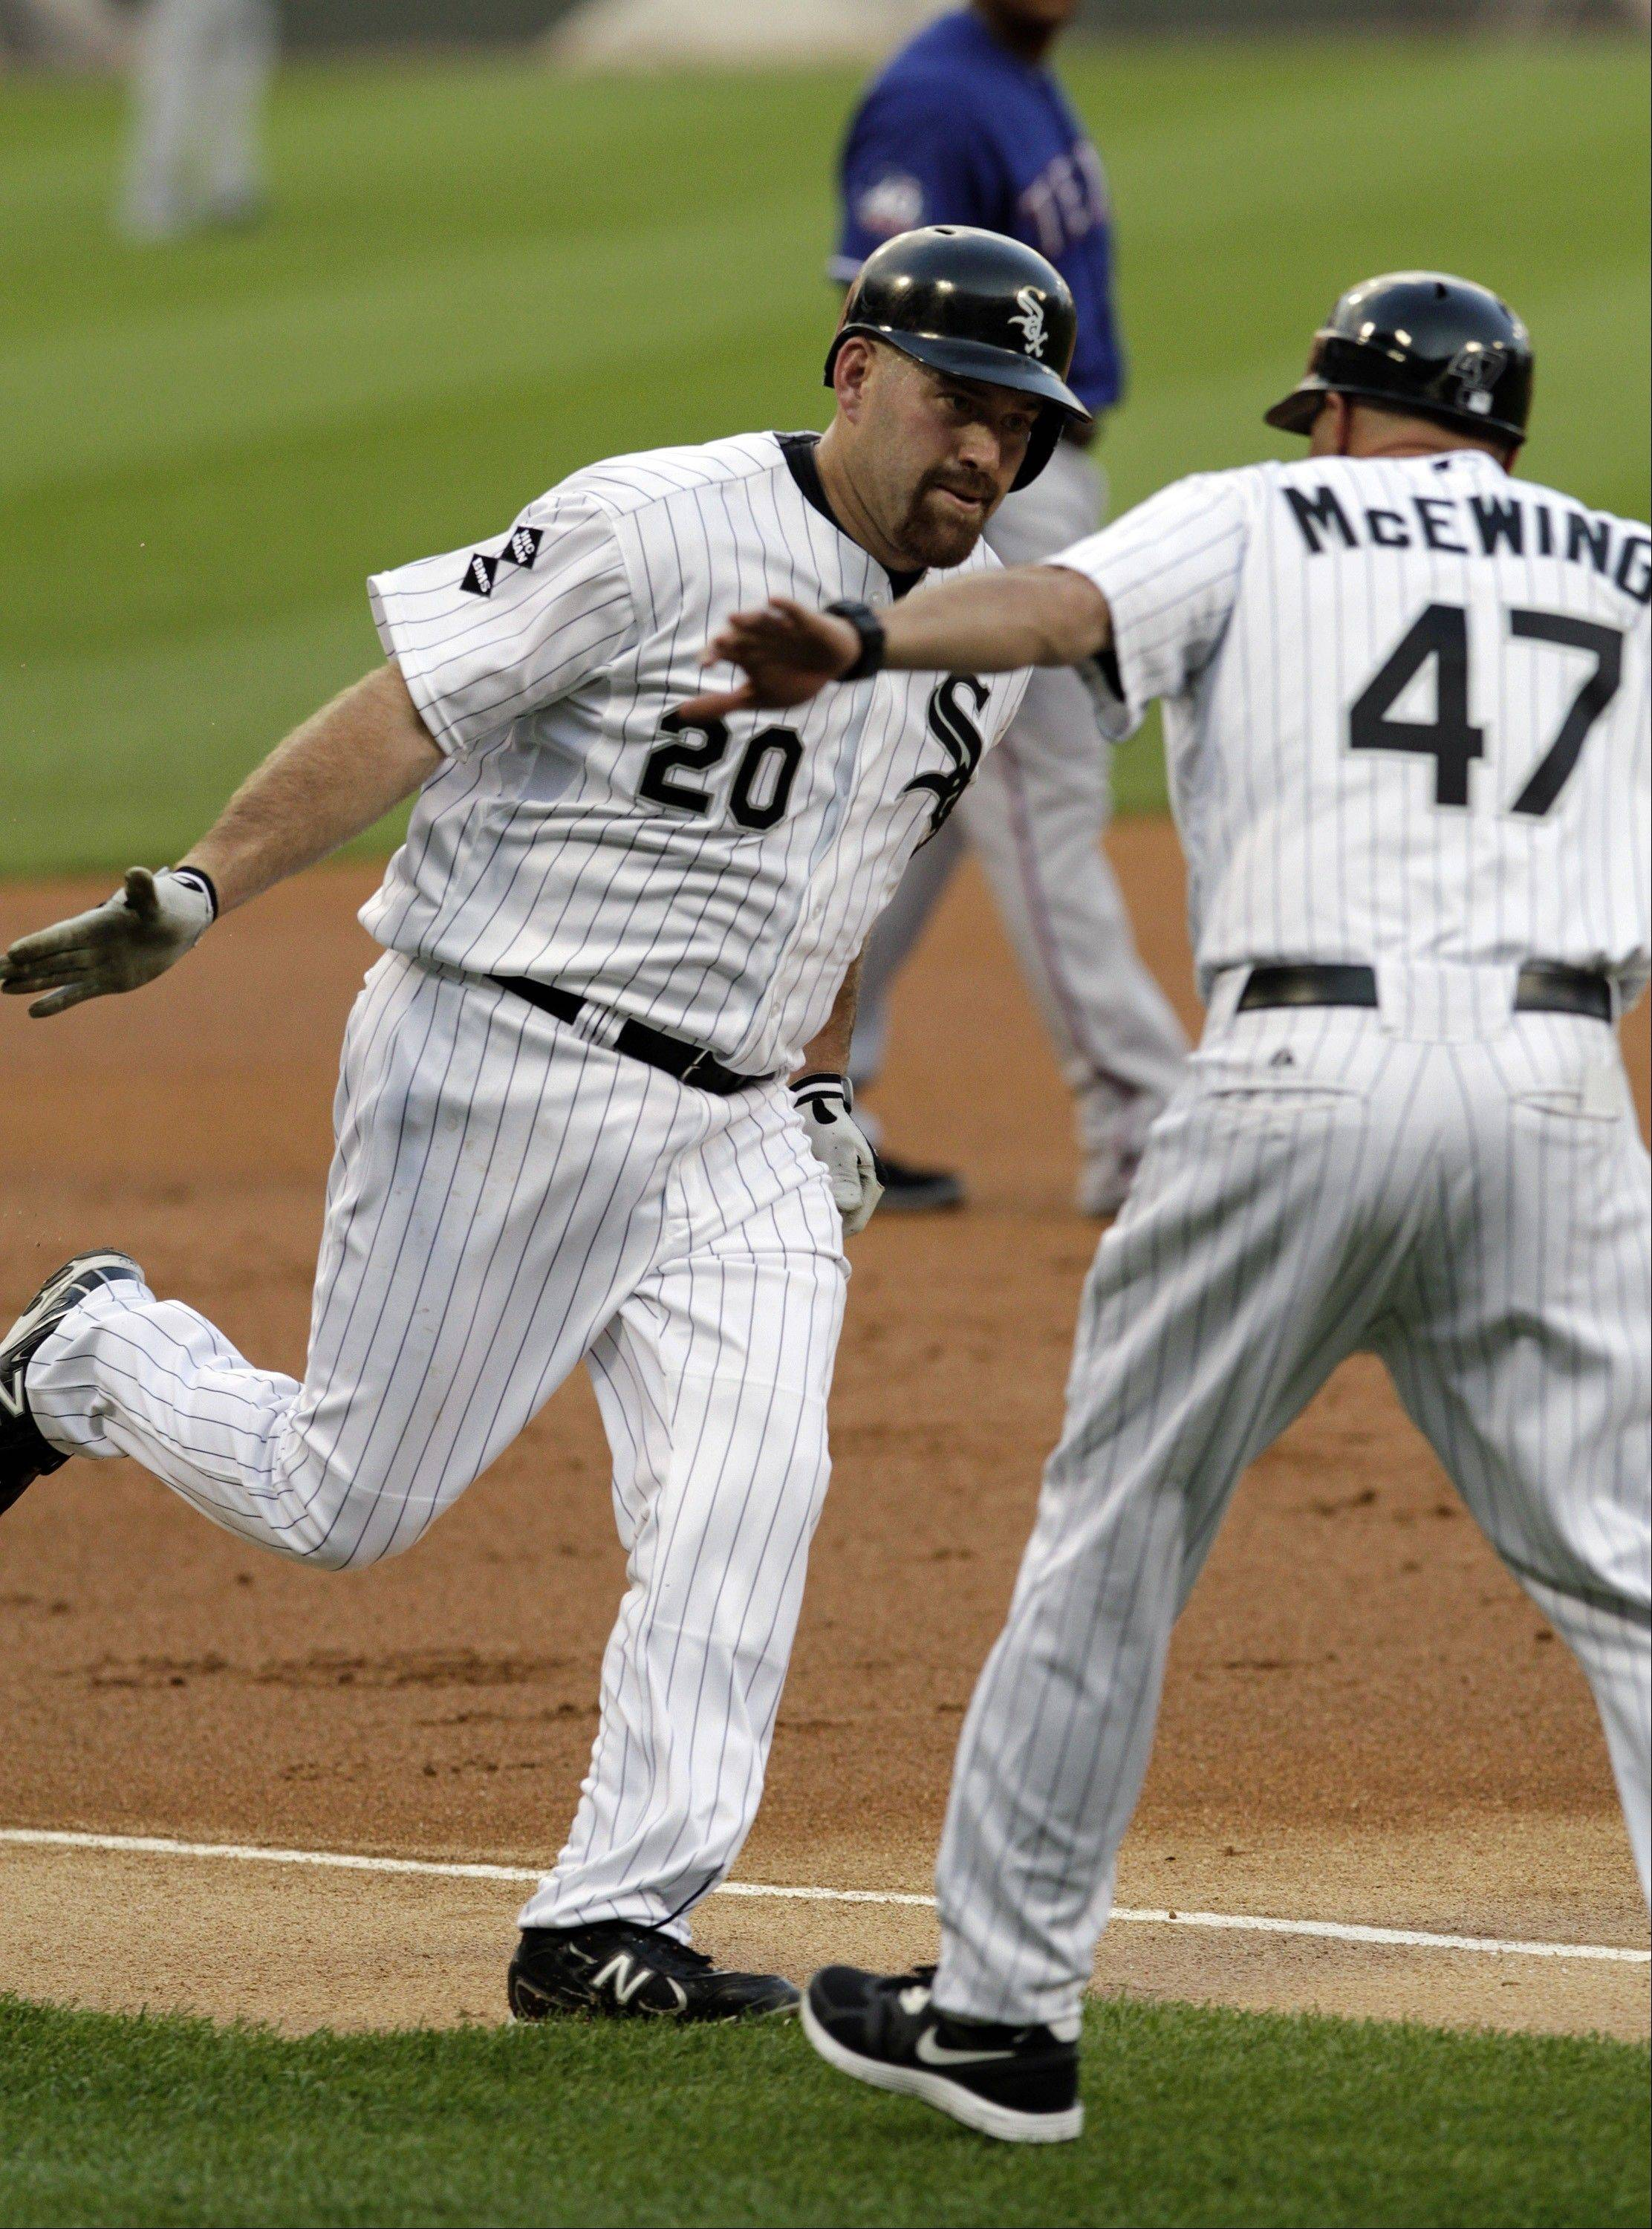 White Sox continue to roll, rout Rangers 19-2